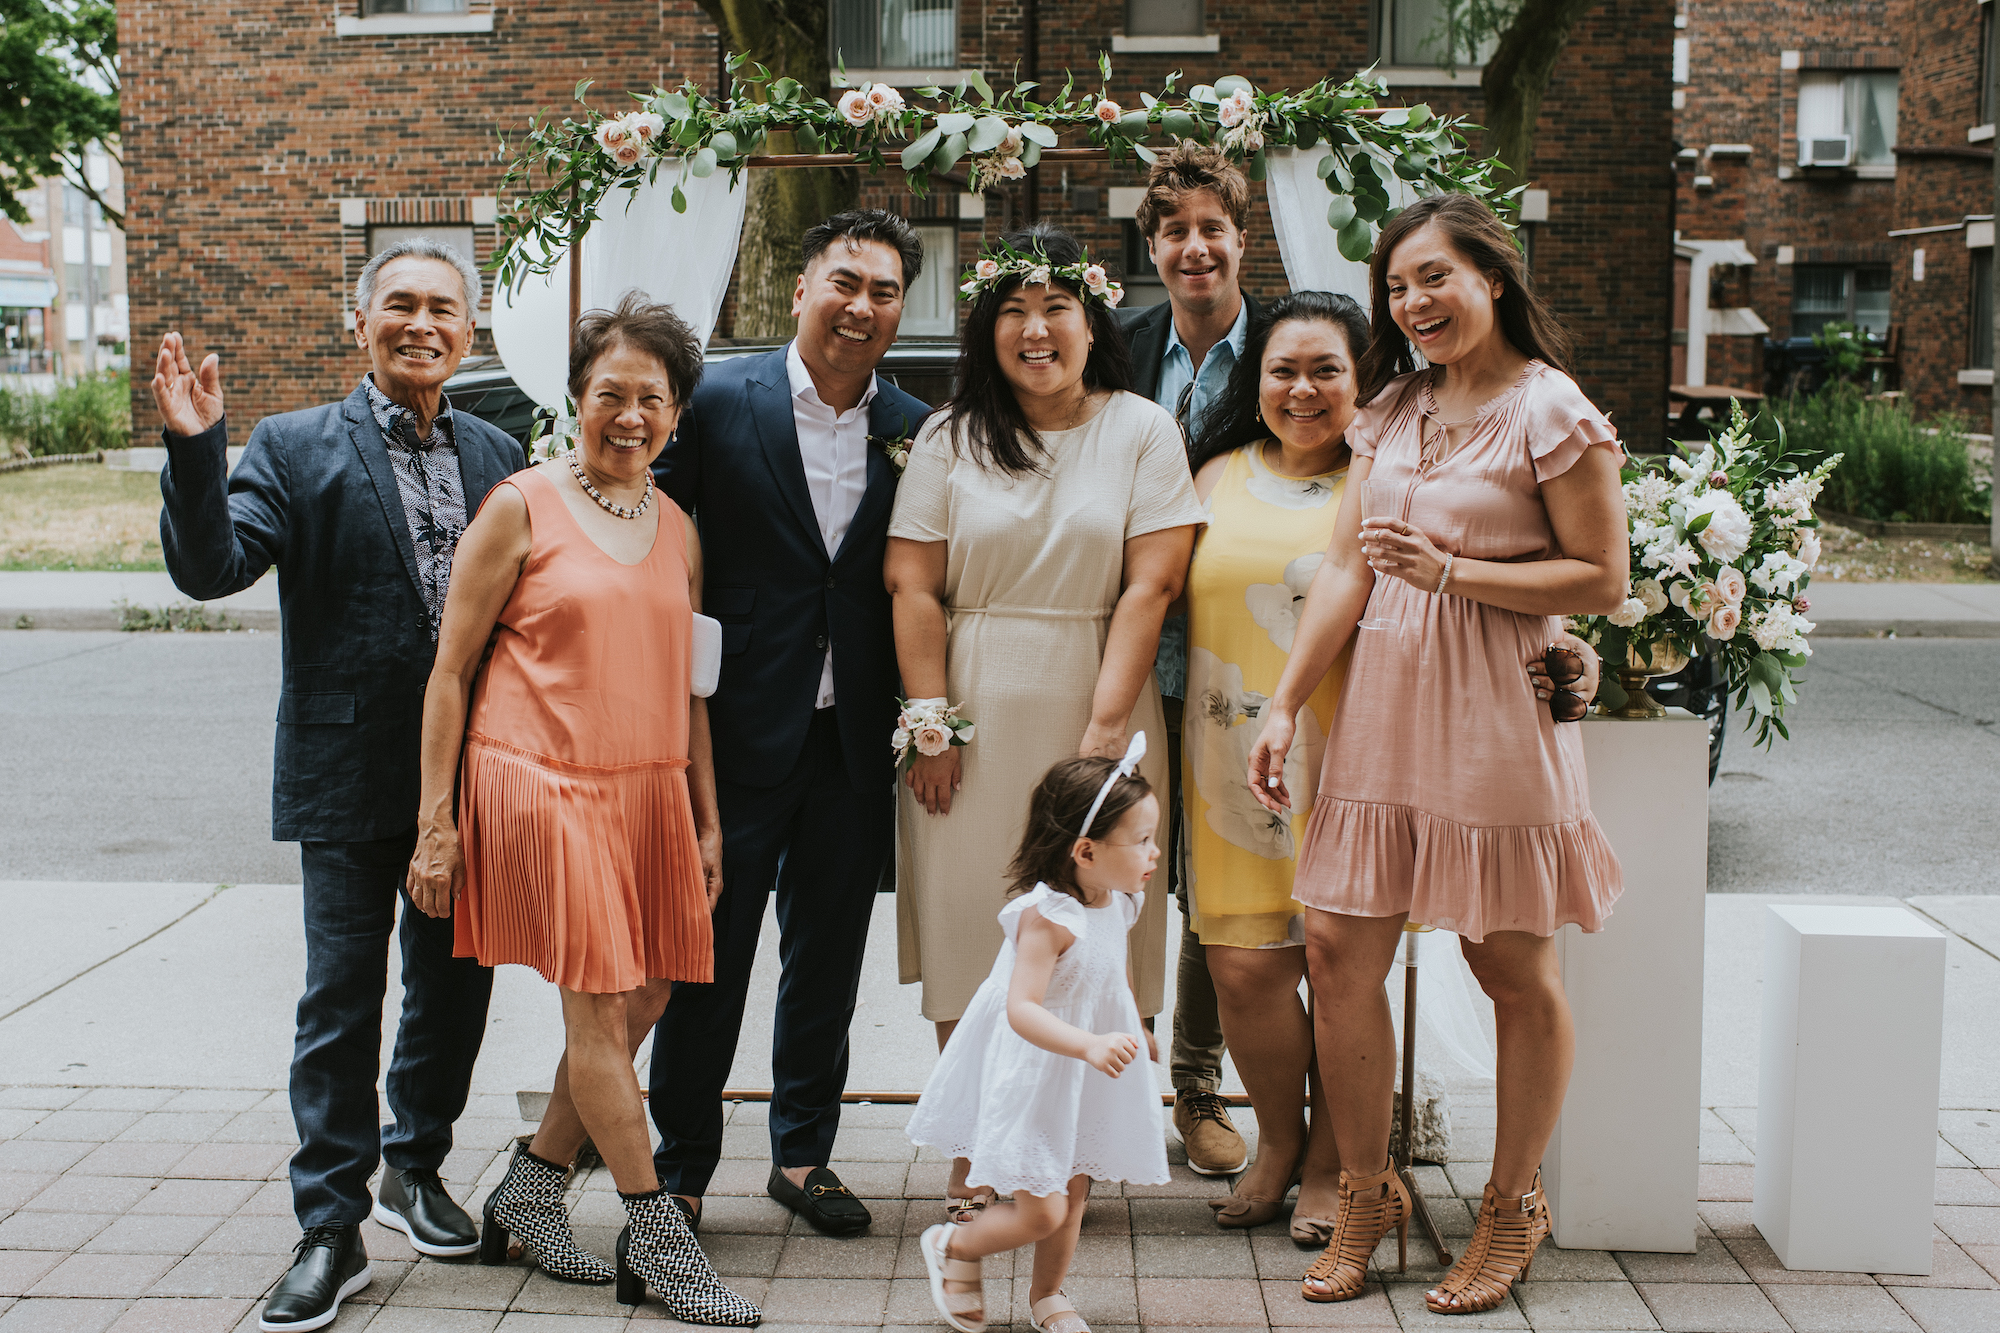 Photo from the wedding of Jeannie Cho and Ryan De Guzman